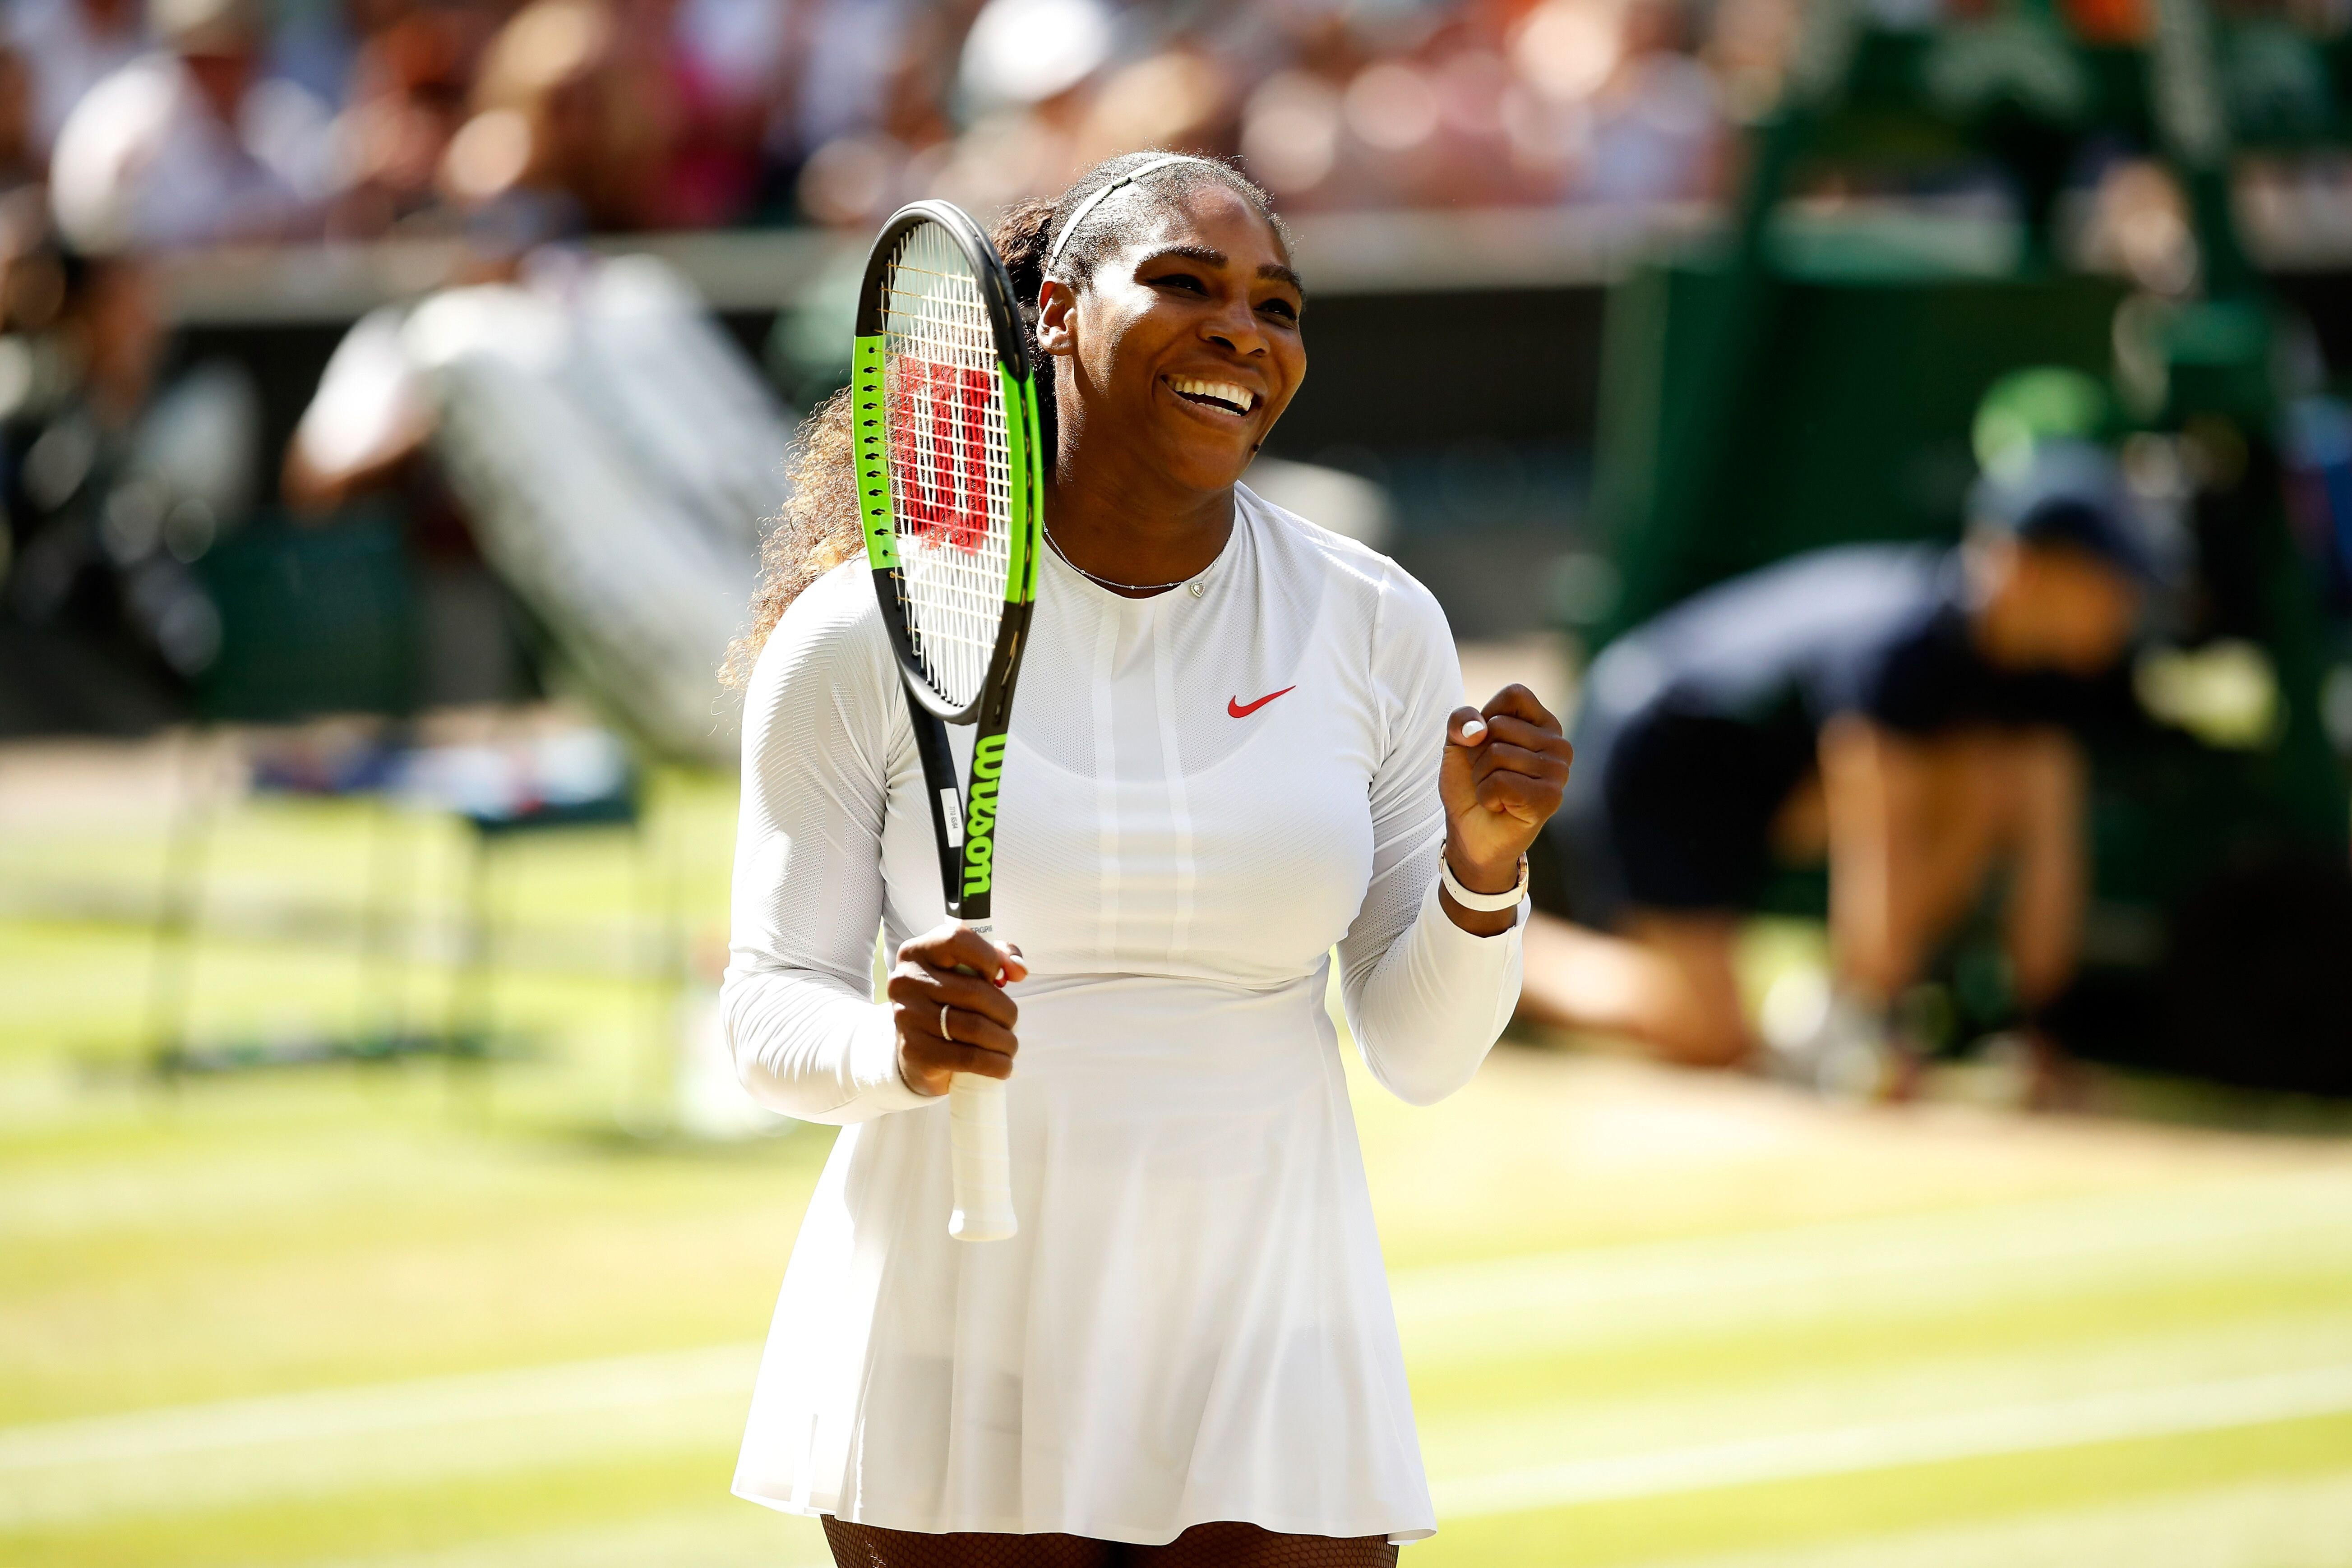 Serena Williams at Wimbledon in 2018/ Source: Getty Images